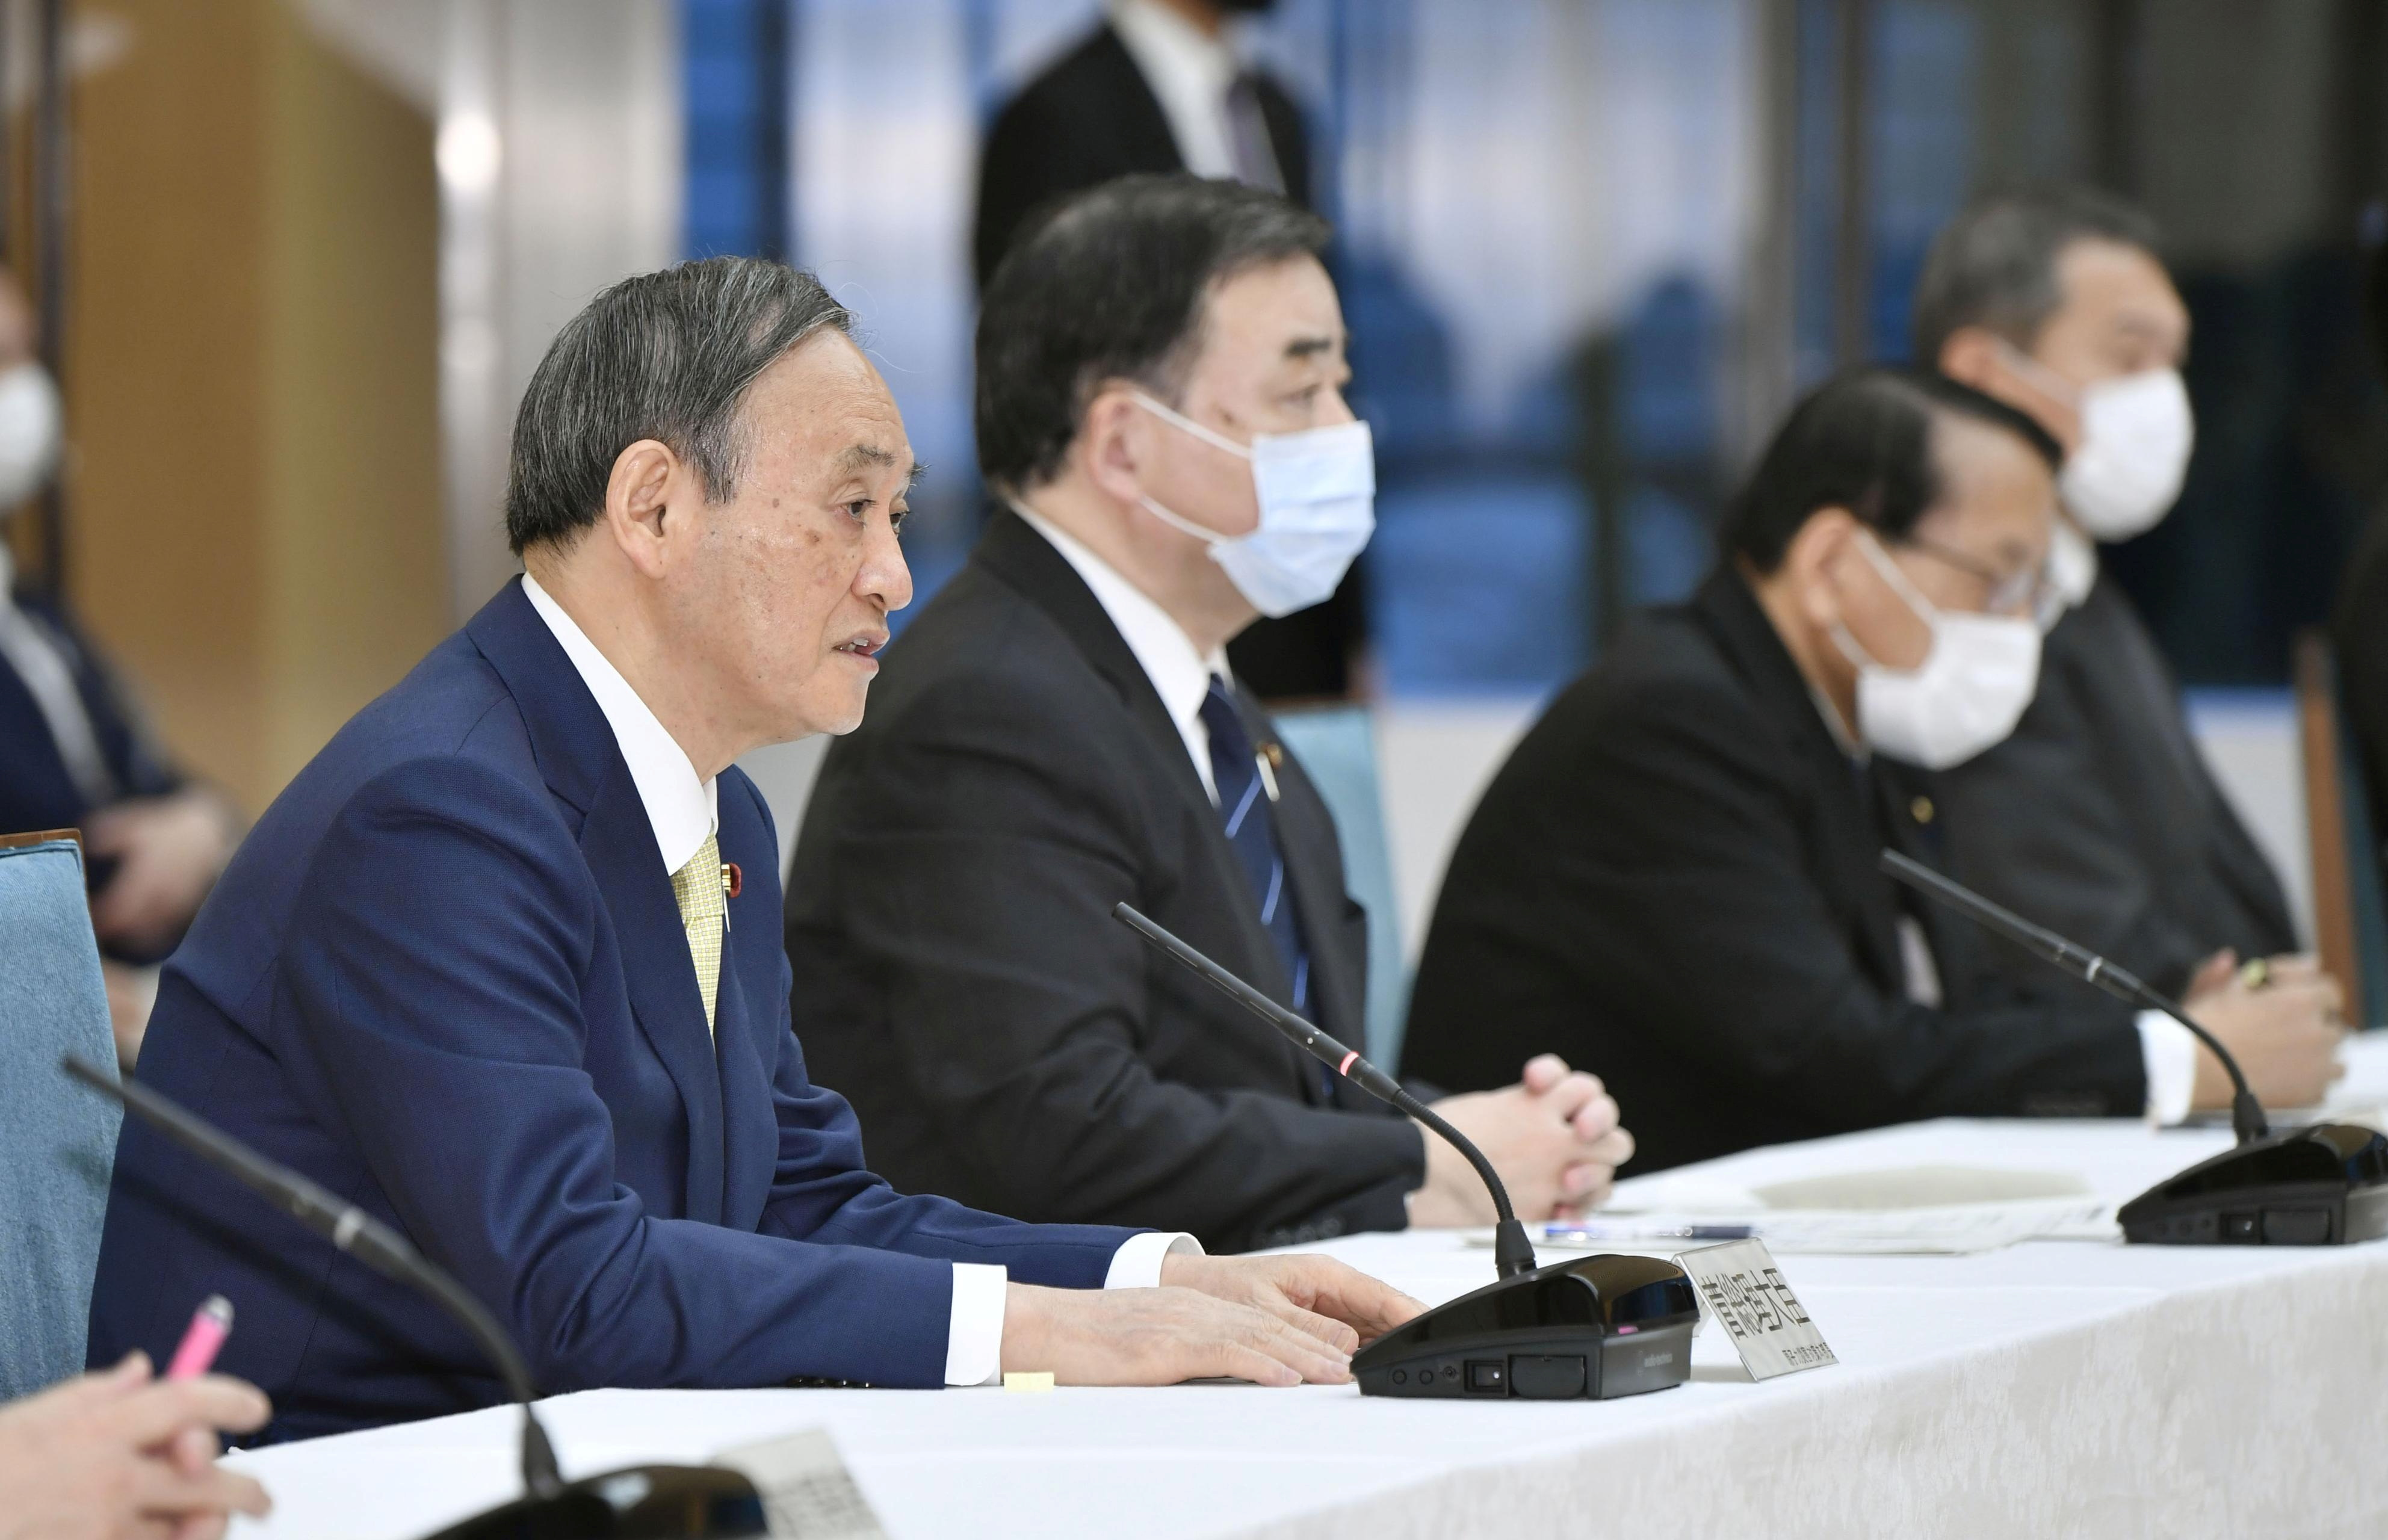 Japan's Prime Minister Yoshihide Suga attends a cabinet meeting at his official residence in Tokyo, Japan April 13, 2021, in this photo taken by Kyodo. Kyodo/via REUTERS